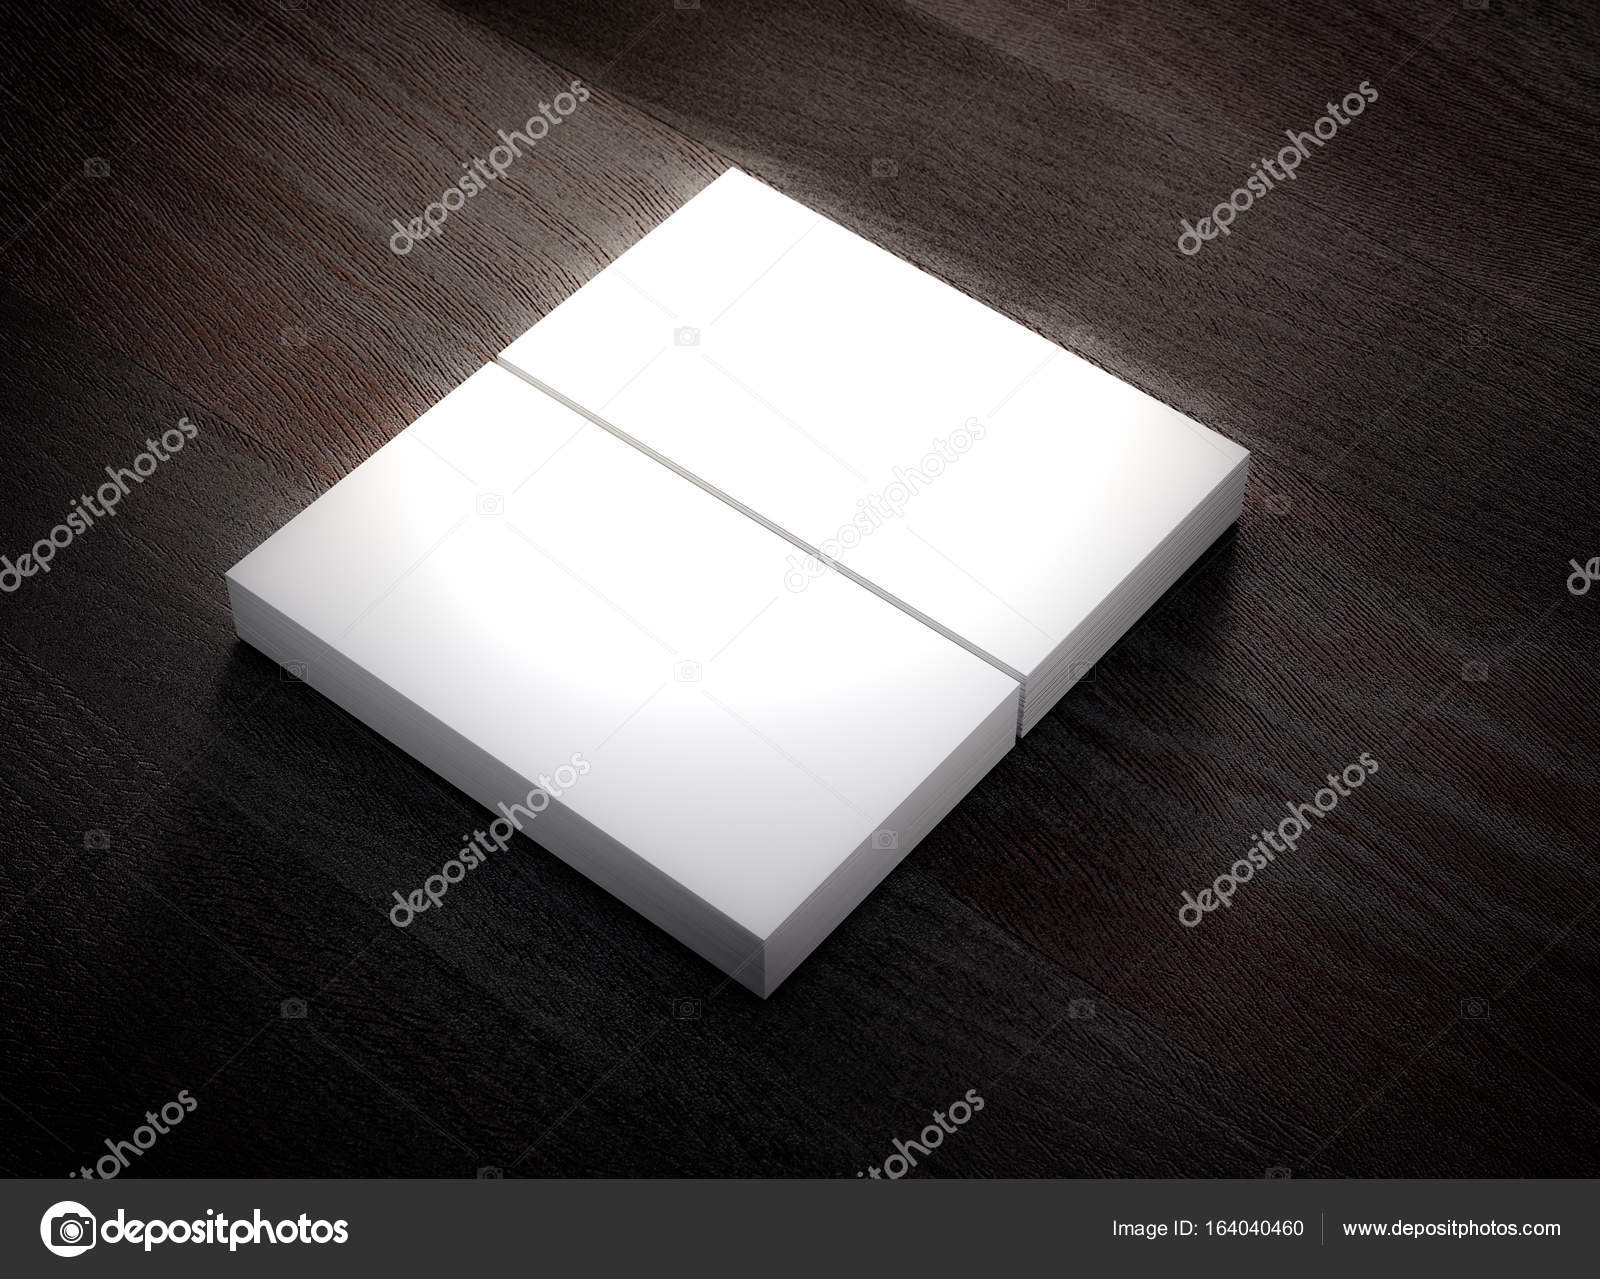 Nice business card mockup template ideas business card ideas blank business card mockup template 3d rendering stock photo reheart